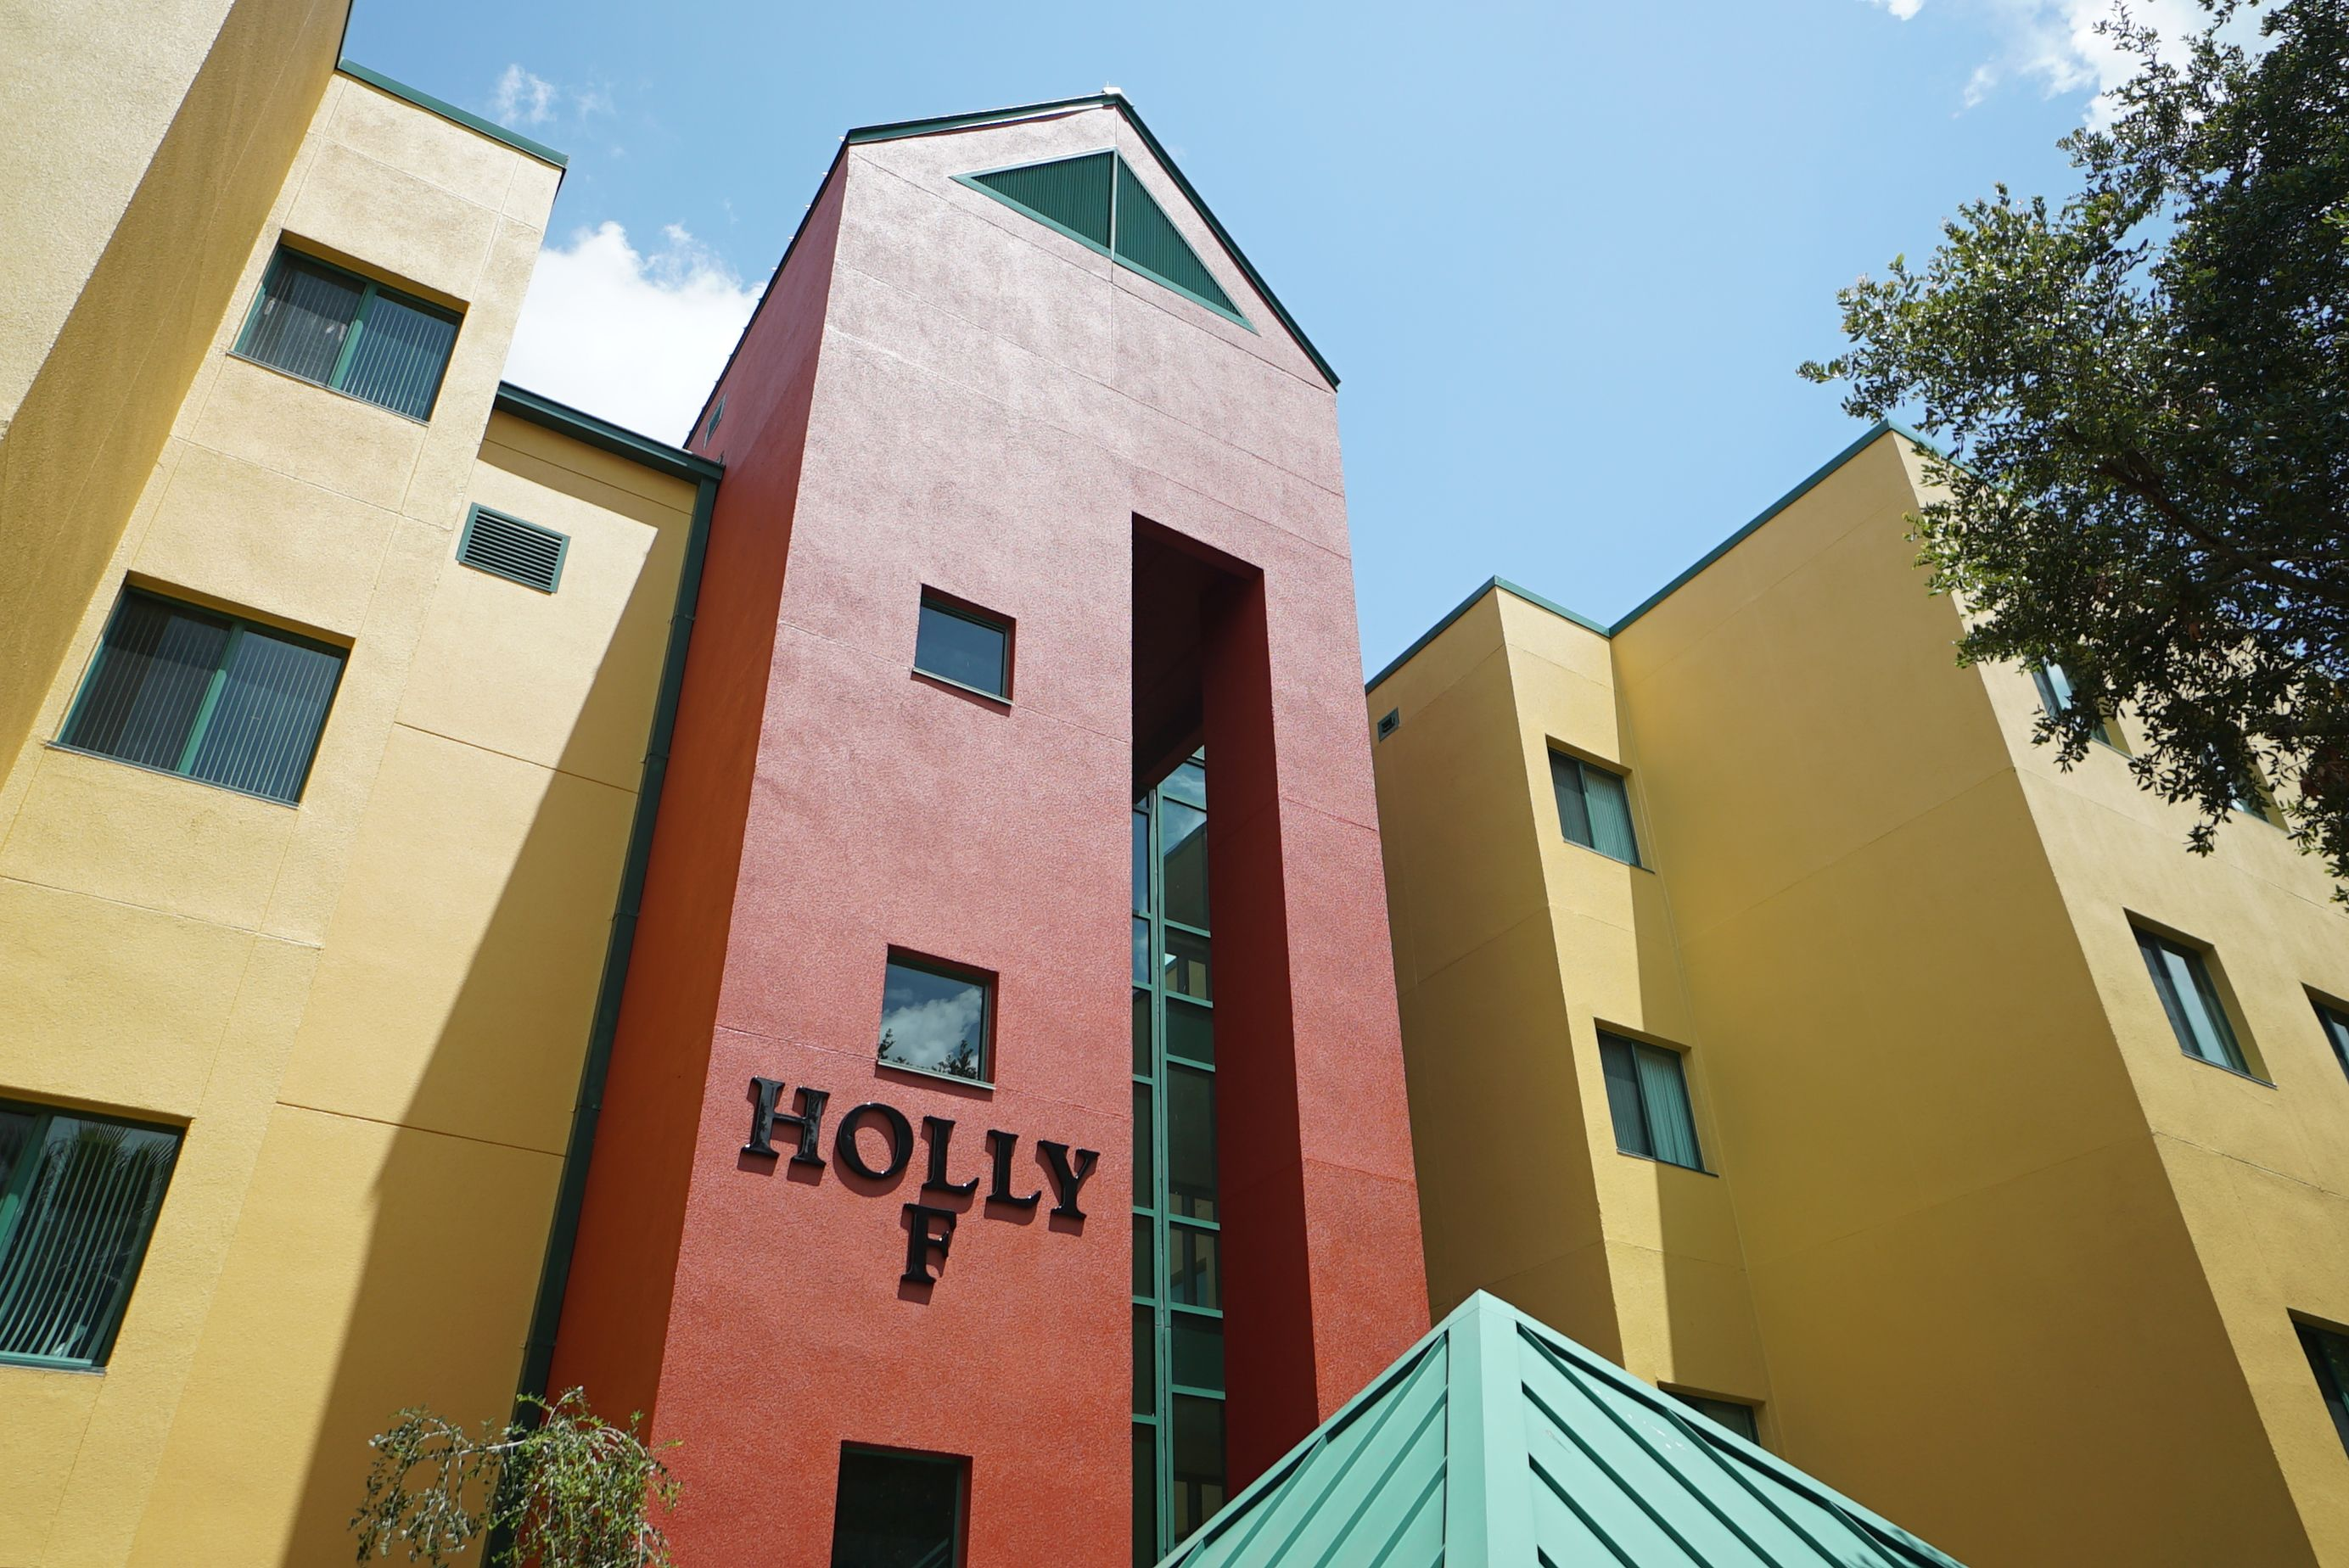 Holly Apartments